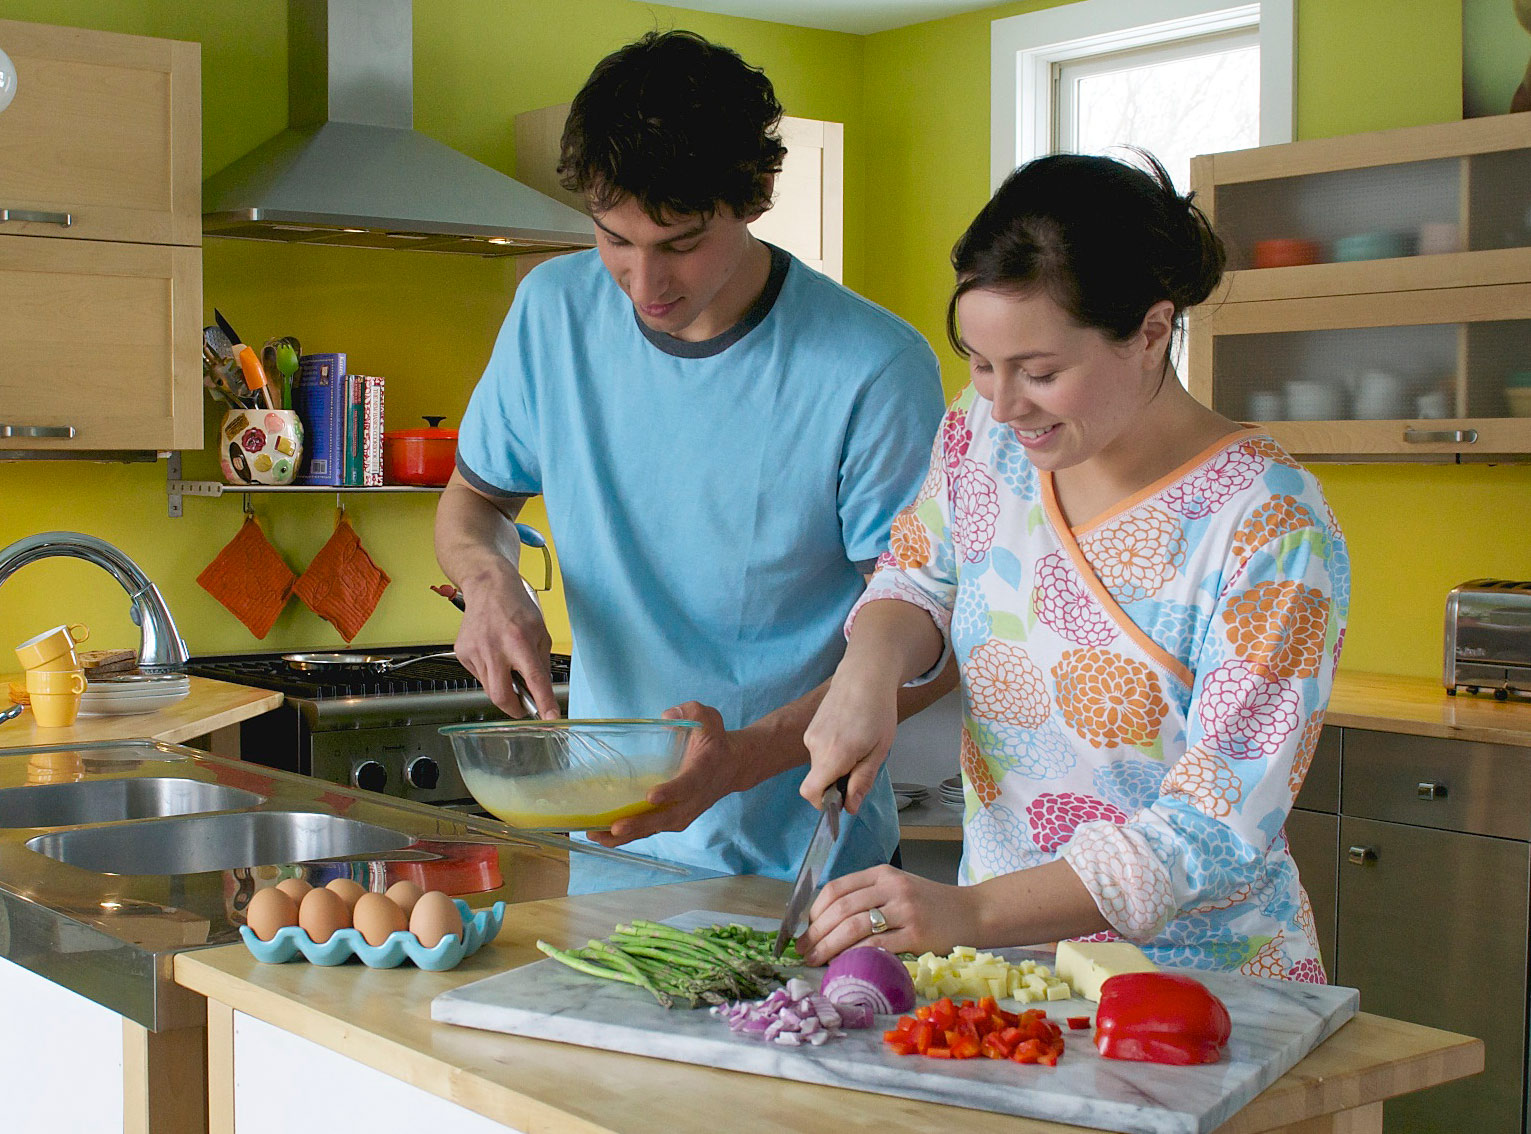 Mom and son make breakfast in the kitchen.